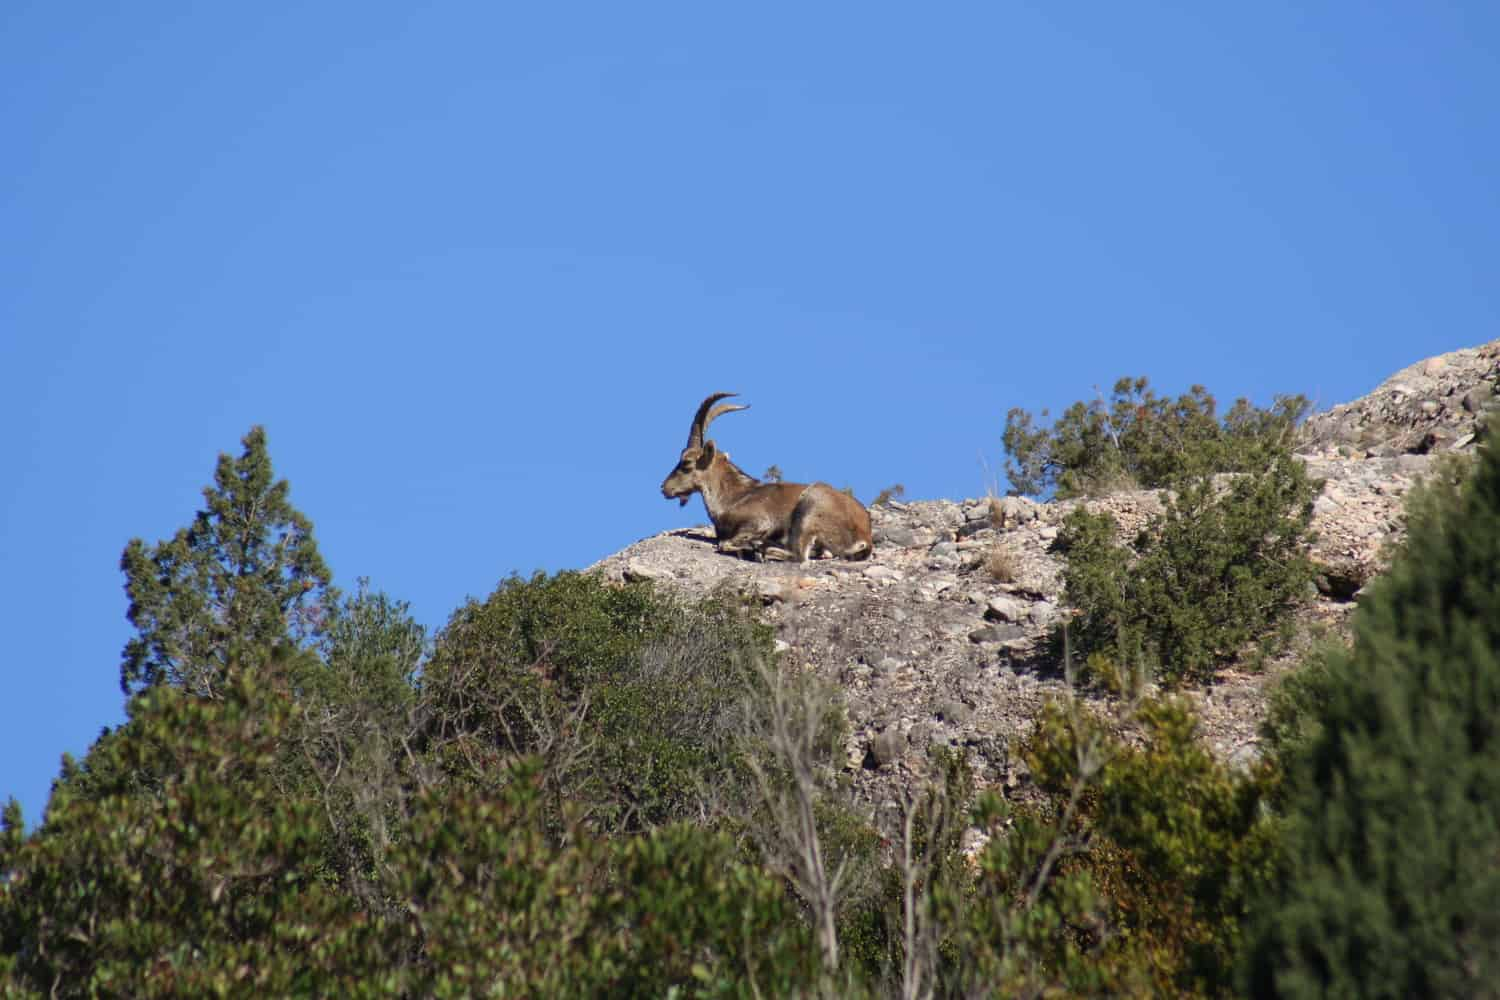 Goat on a mountain | Giraffa